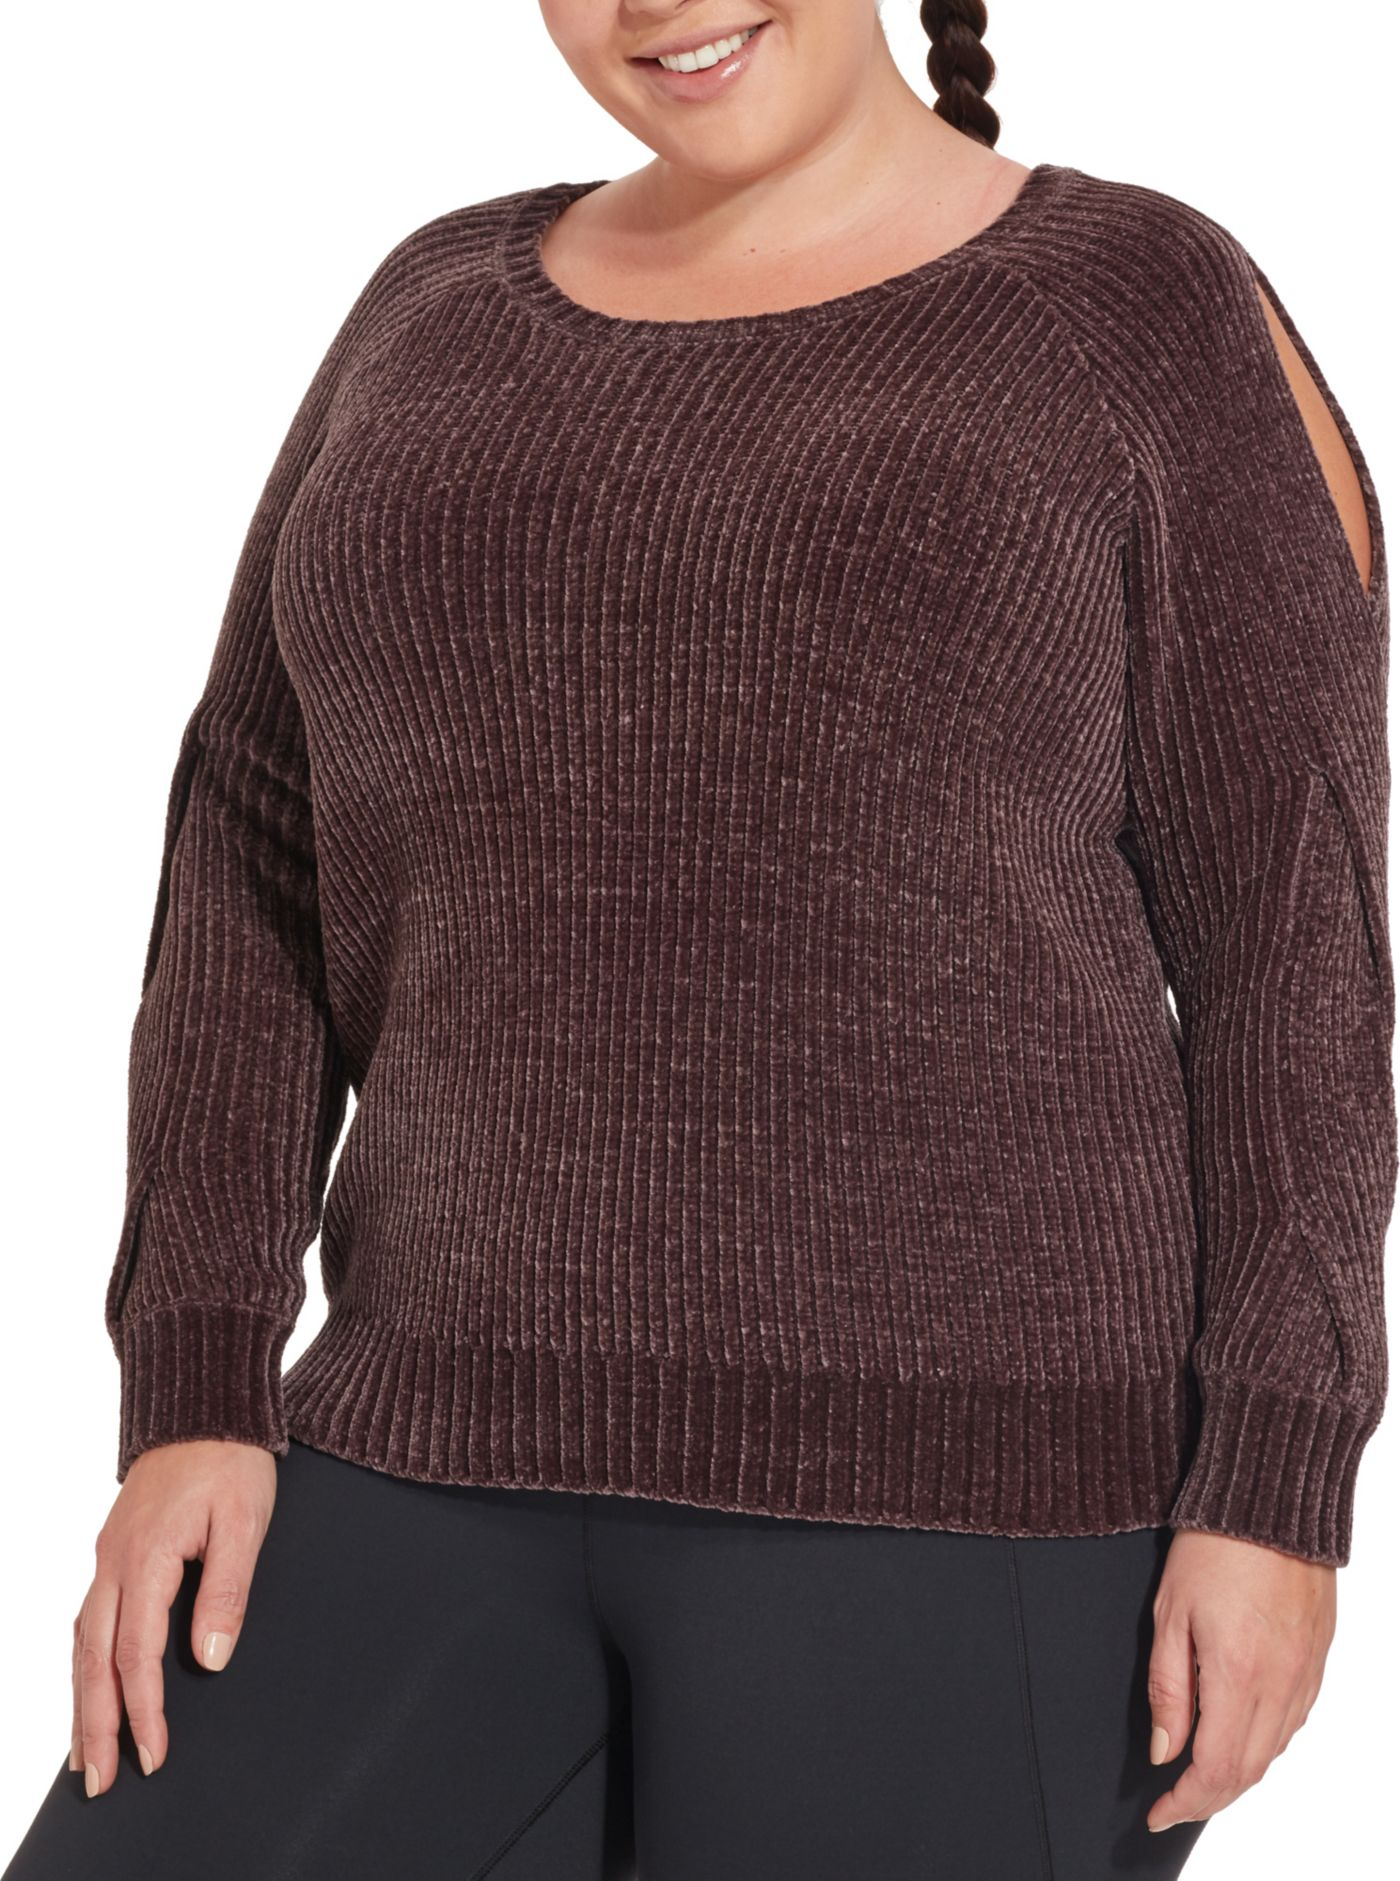 CALIA by Carrie Underwood Women's Plus Size Effortless Chenille Sweater